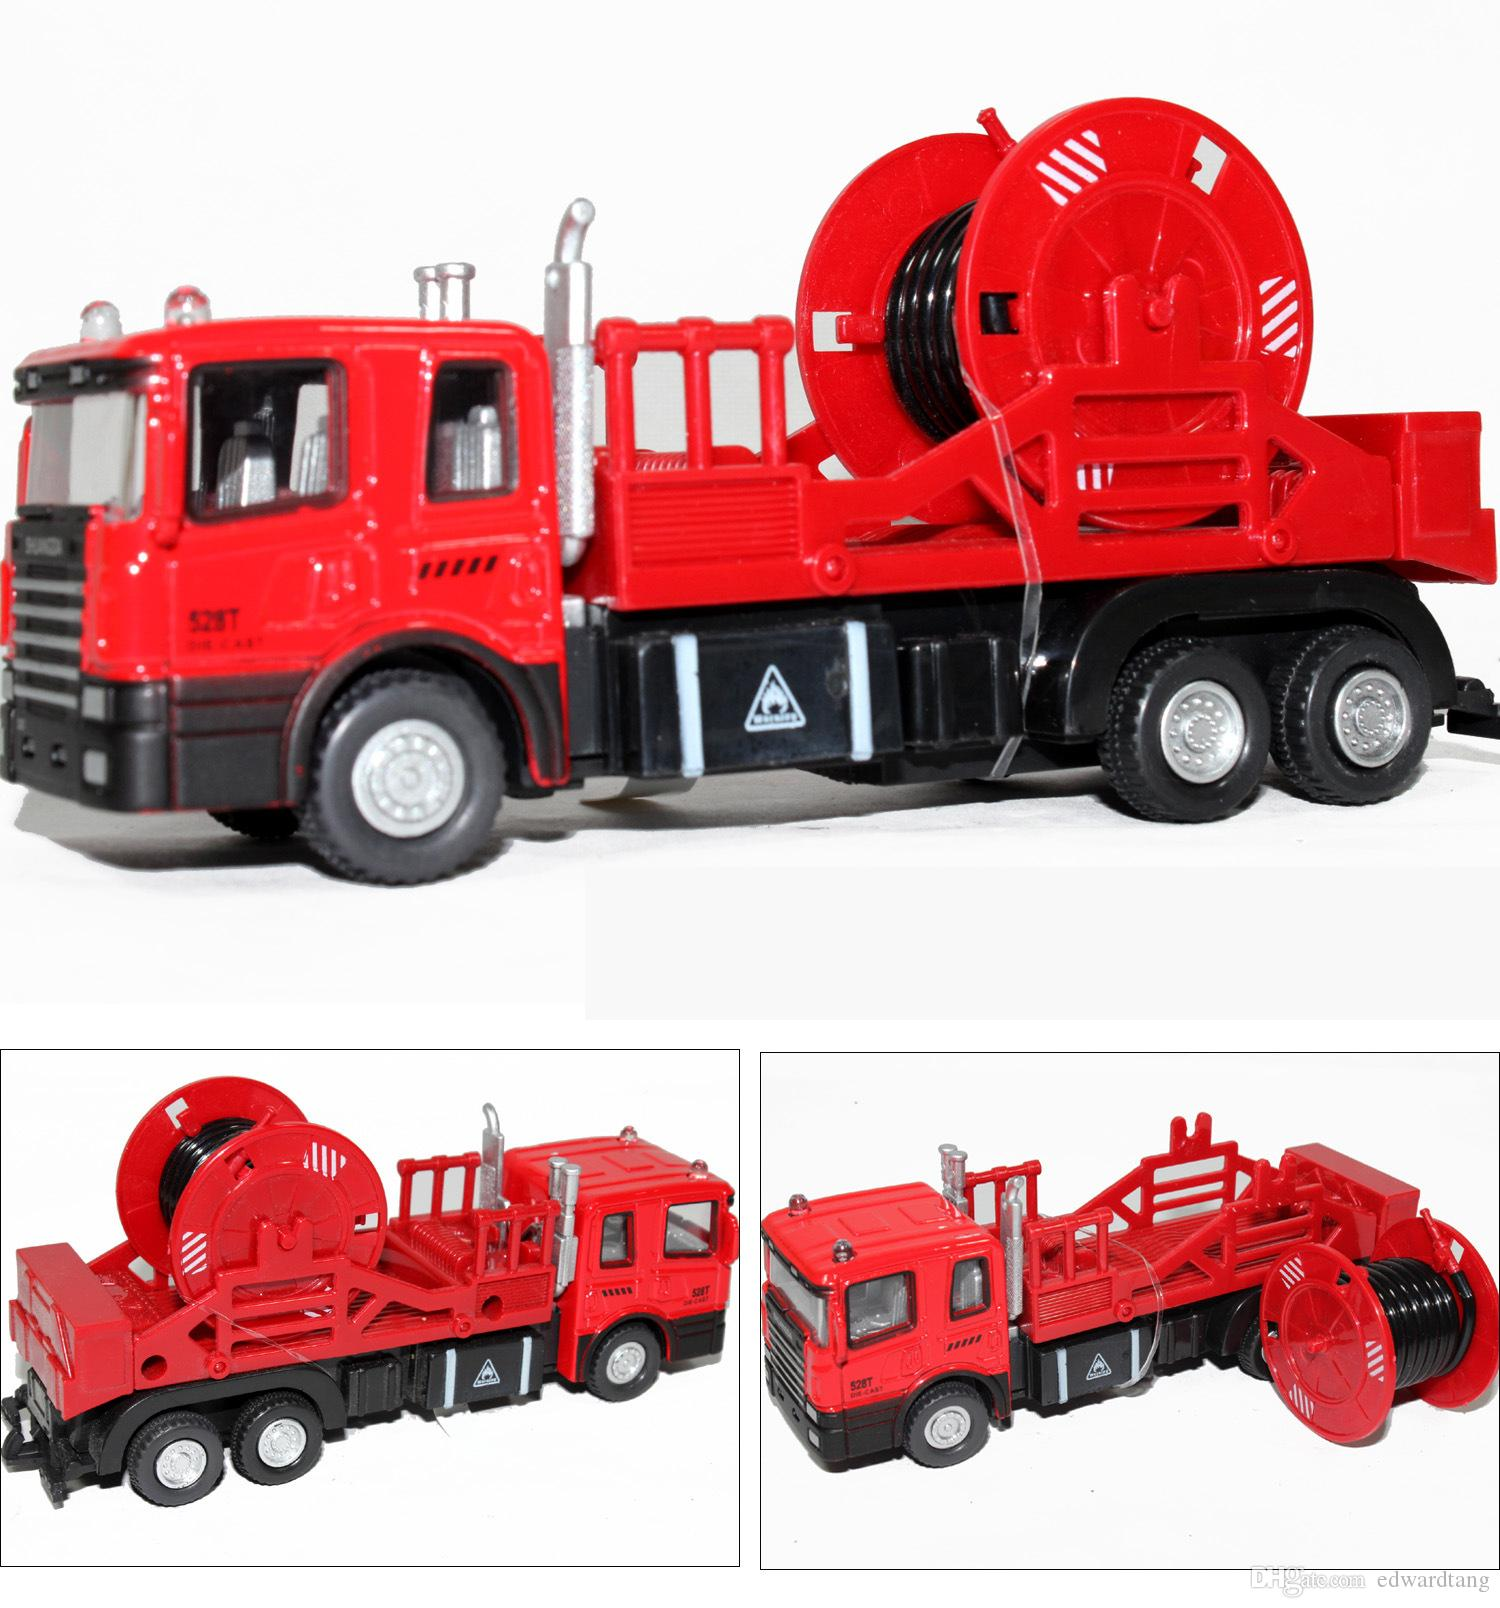 Alloy Truck Model Toy, Aerial Ladder Fire Truck Toy, Water Tanker, 5 Different Kinds, with Light for Christmas Kid' Gifts, Collecting